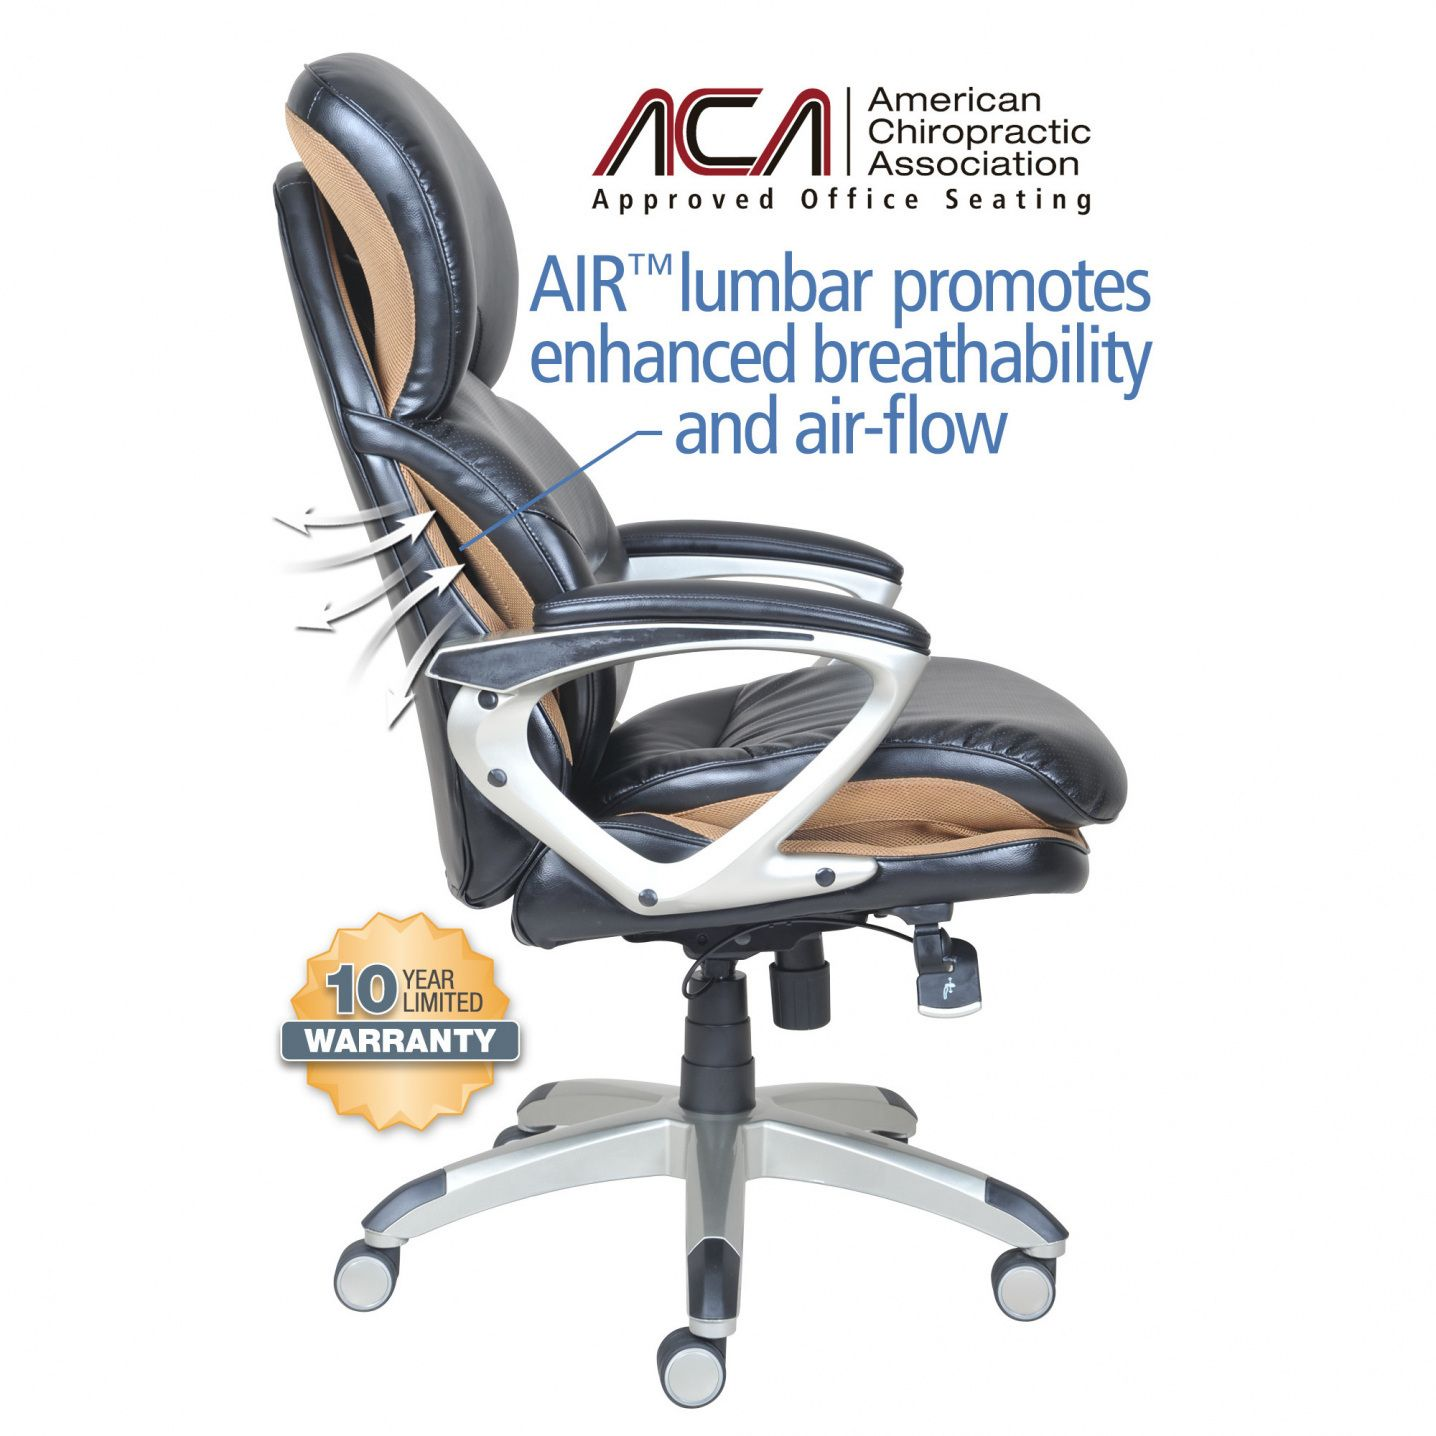 La Z Boy Delano Big And Tall Executive Office Chair Chestnut Qdos Fishing American Chiropractic Association Approved Chairs